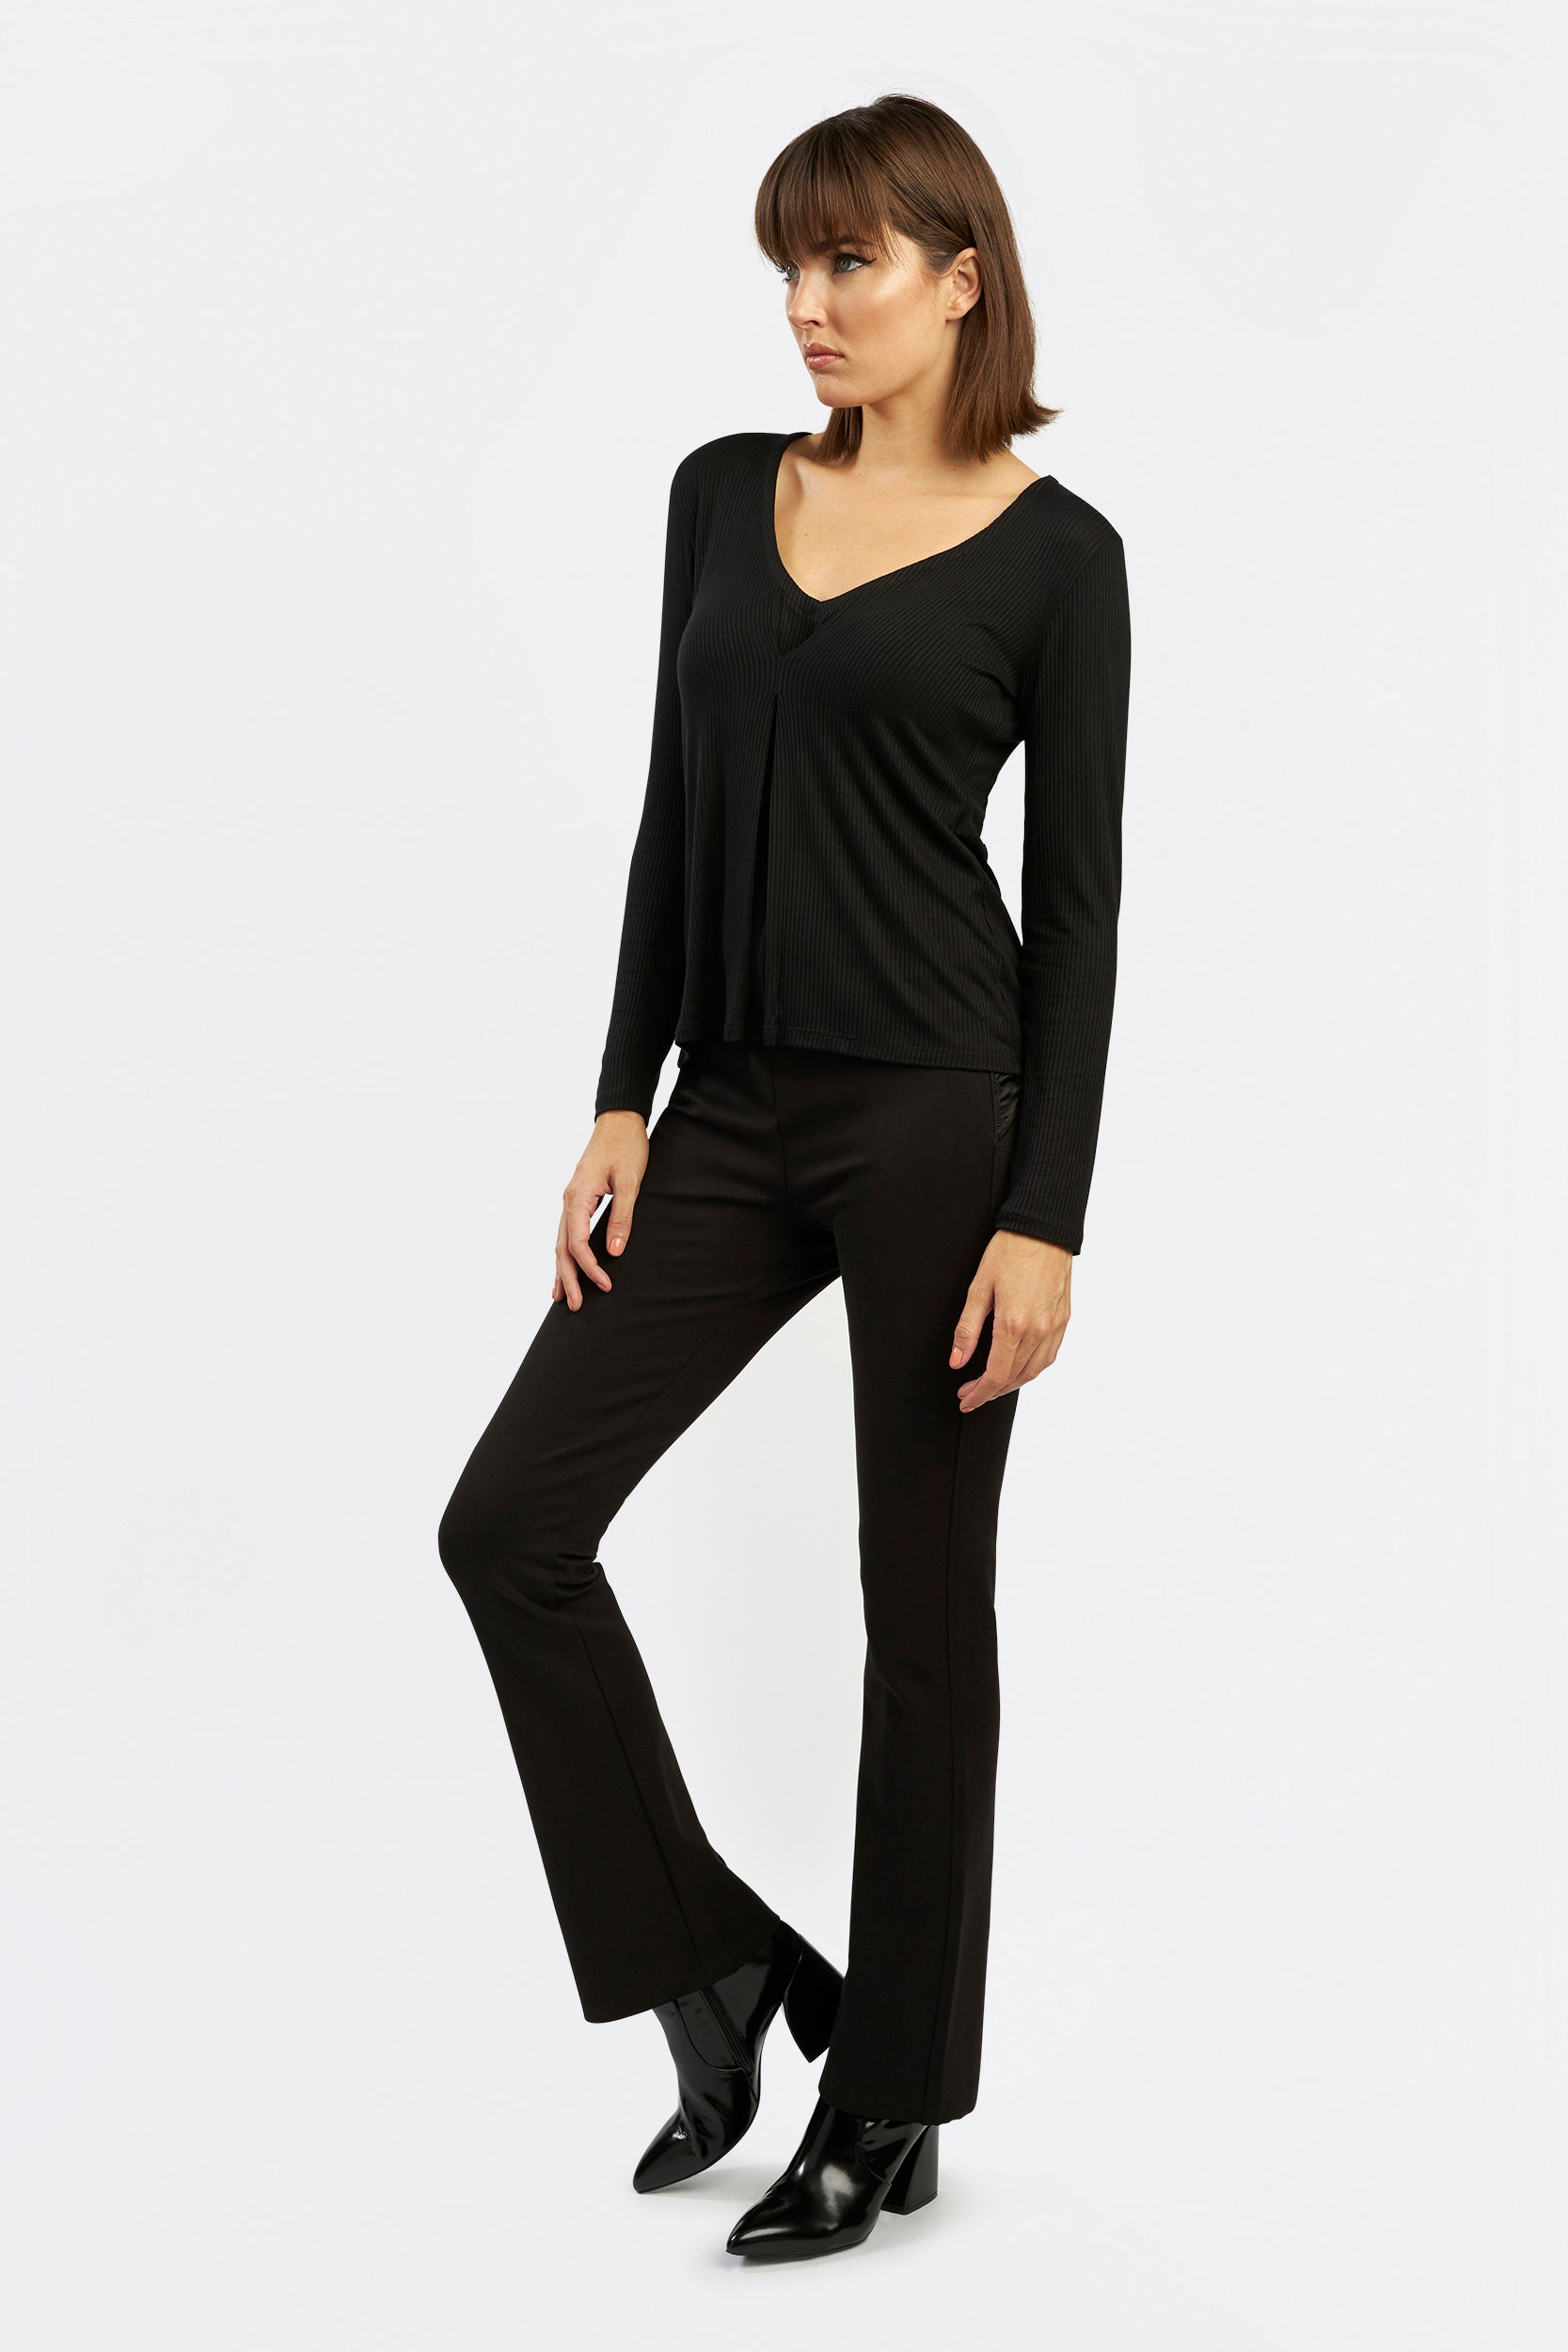 Royal Tuck Top knit top by INLARKIN with inverted pleat at bust for a fitted flattering look